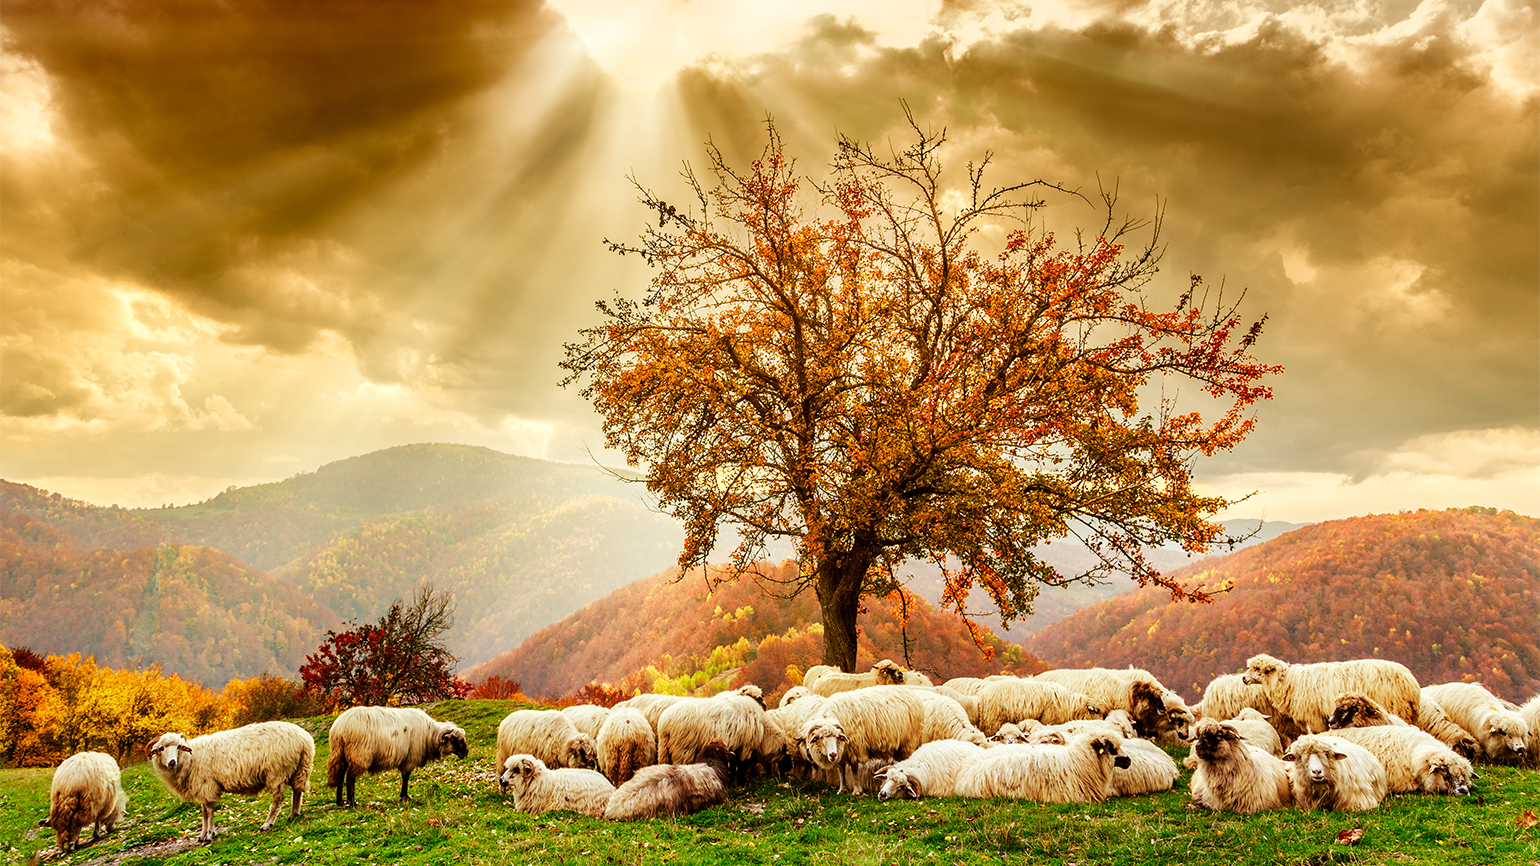 A flock of sheep on an autumn day